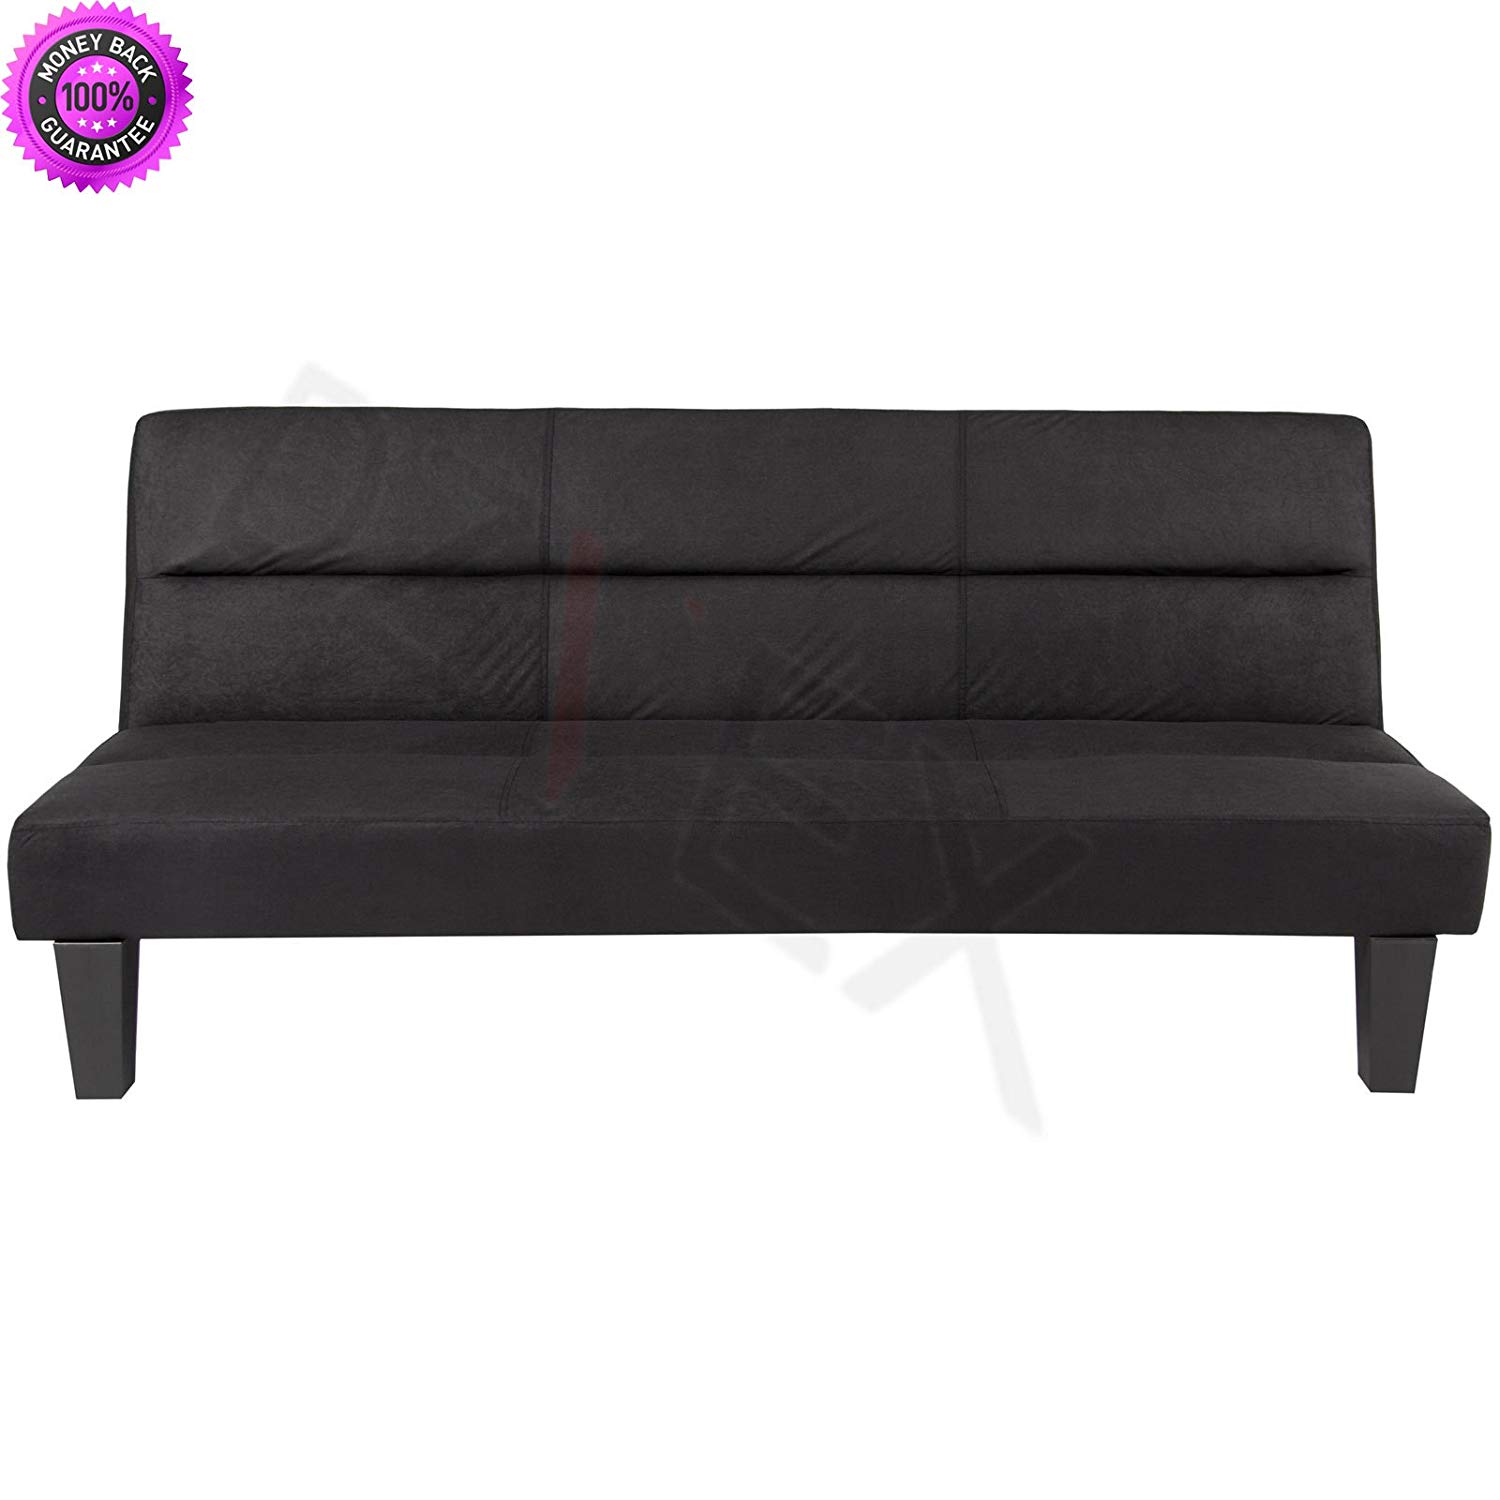 delaney futon sofa bed 3 piece living room set inspiration small apartment cheap find deals on get quotations dzvex microfiber folding couch black and full size fraame mattress